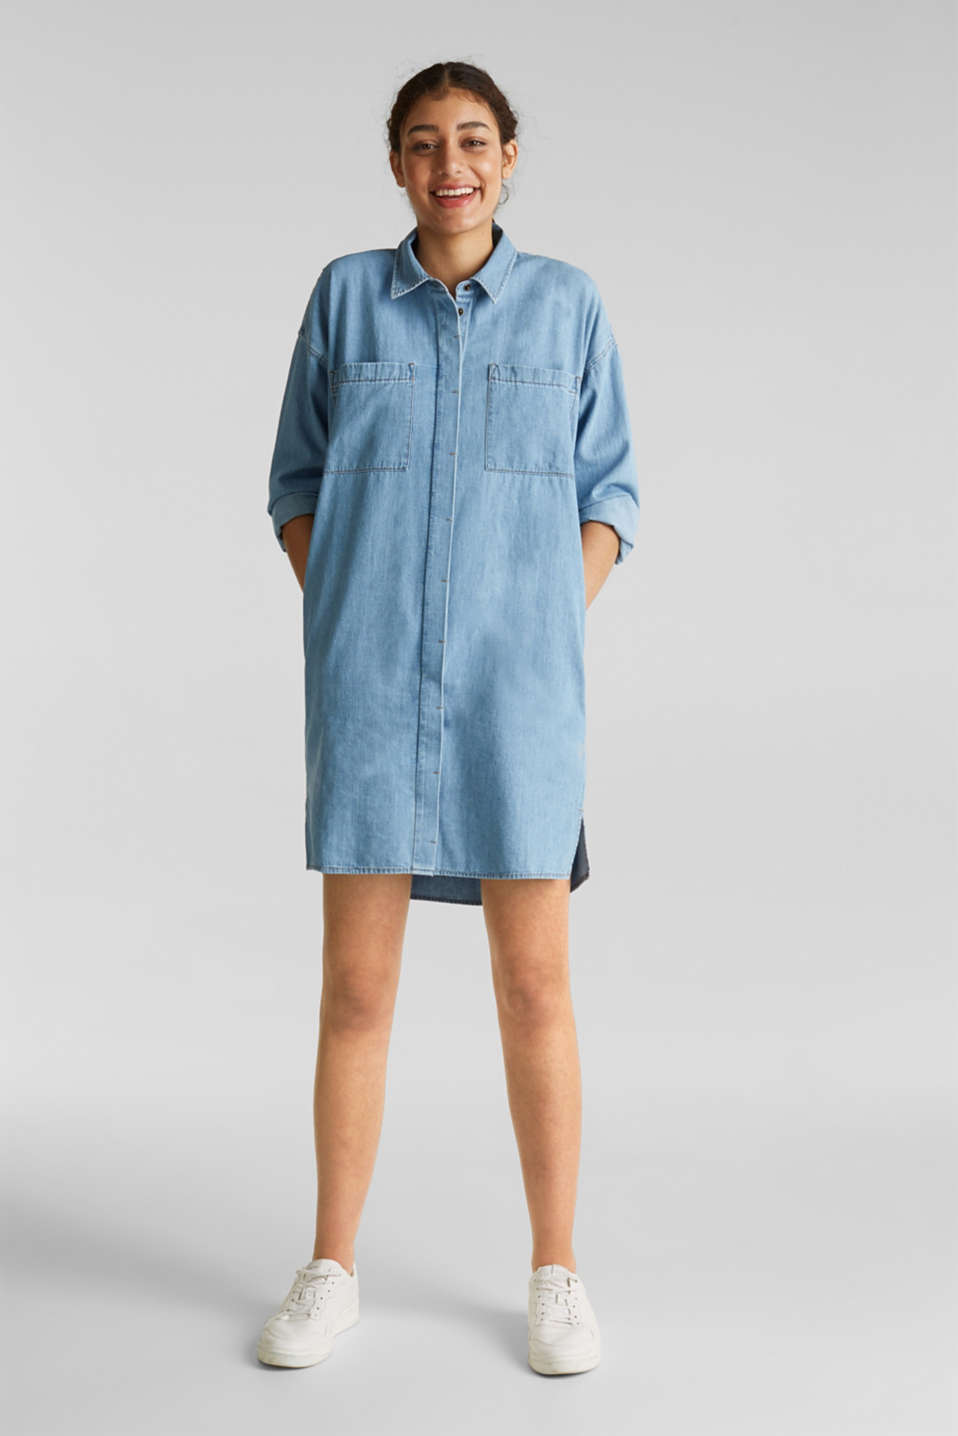 100% cotton denim shirt dress, BLUE LIGHT WASH, detail image number 1